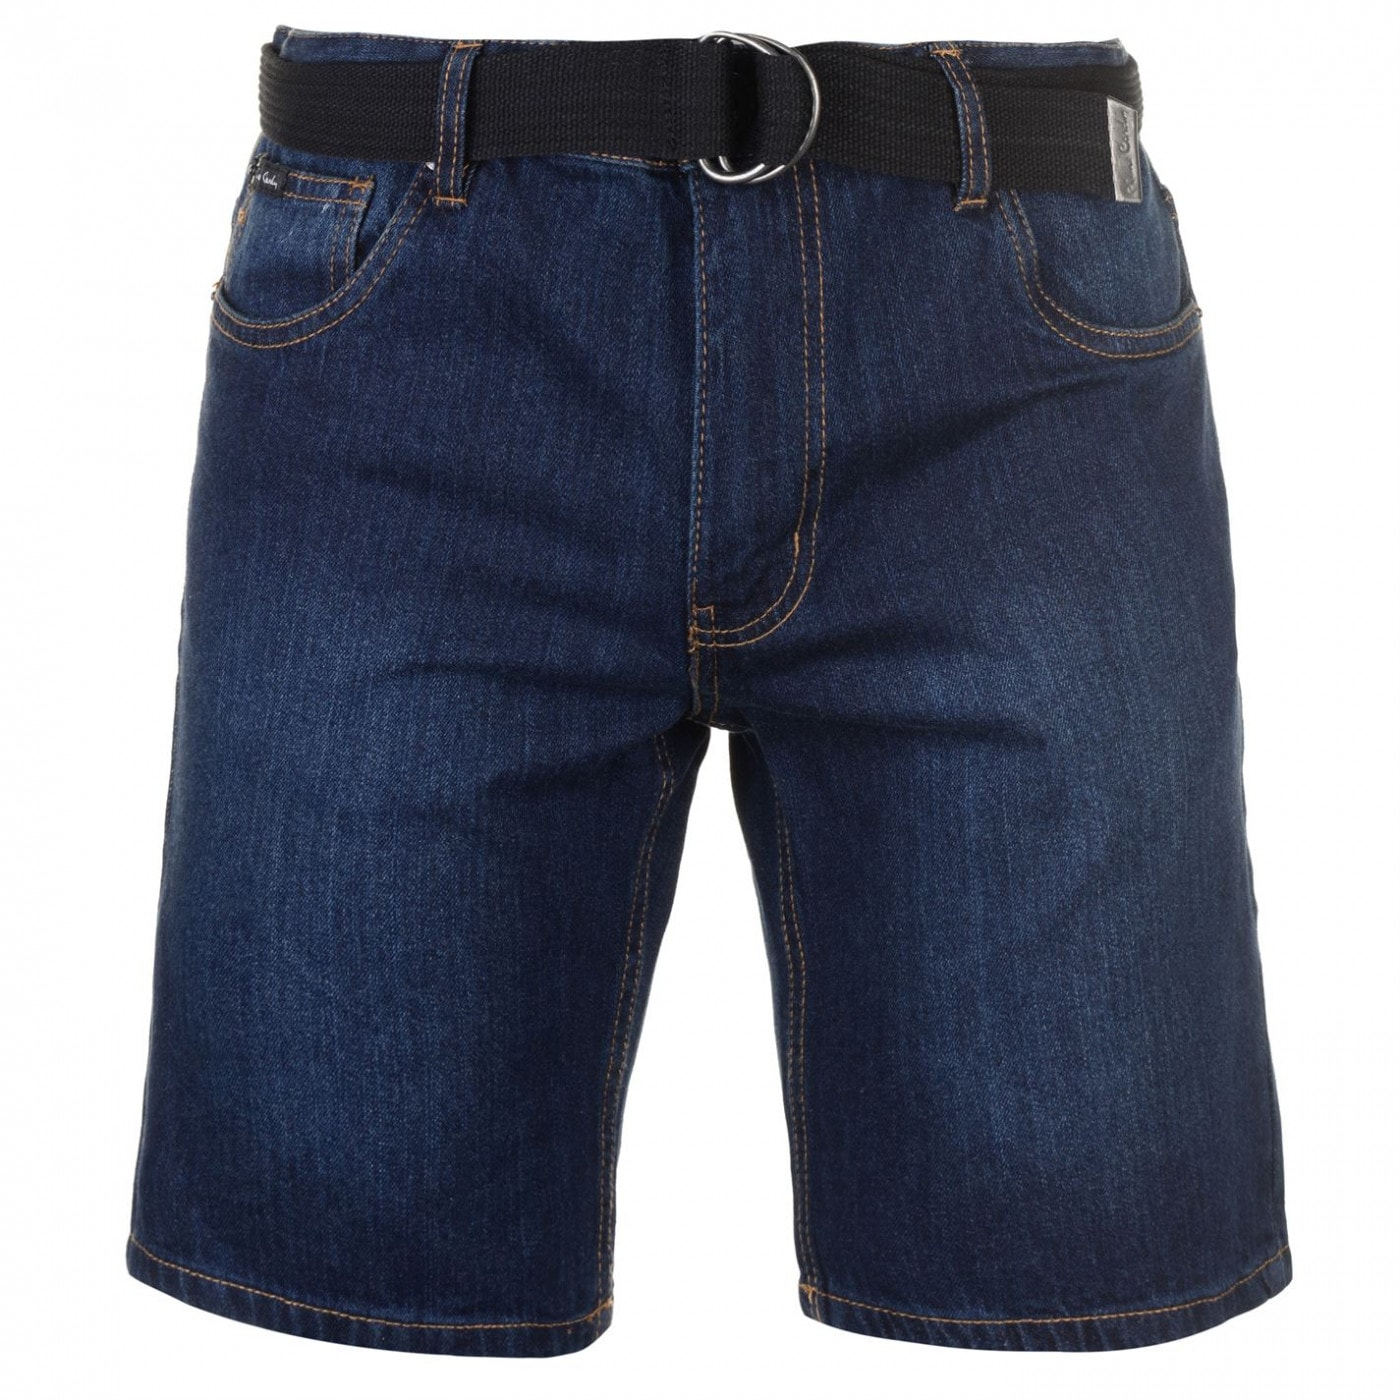 Pierre Cardin Denim Web Belt Shorts Mens